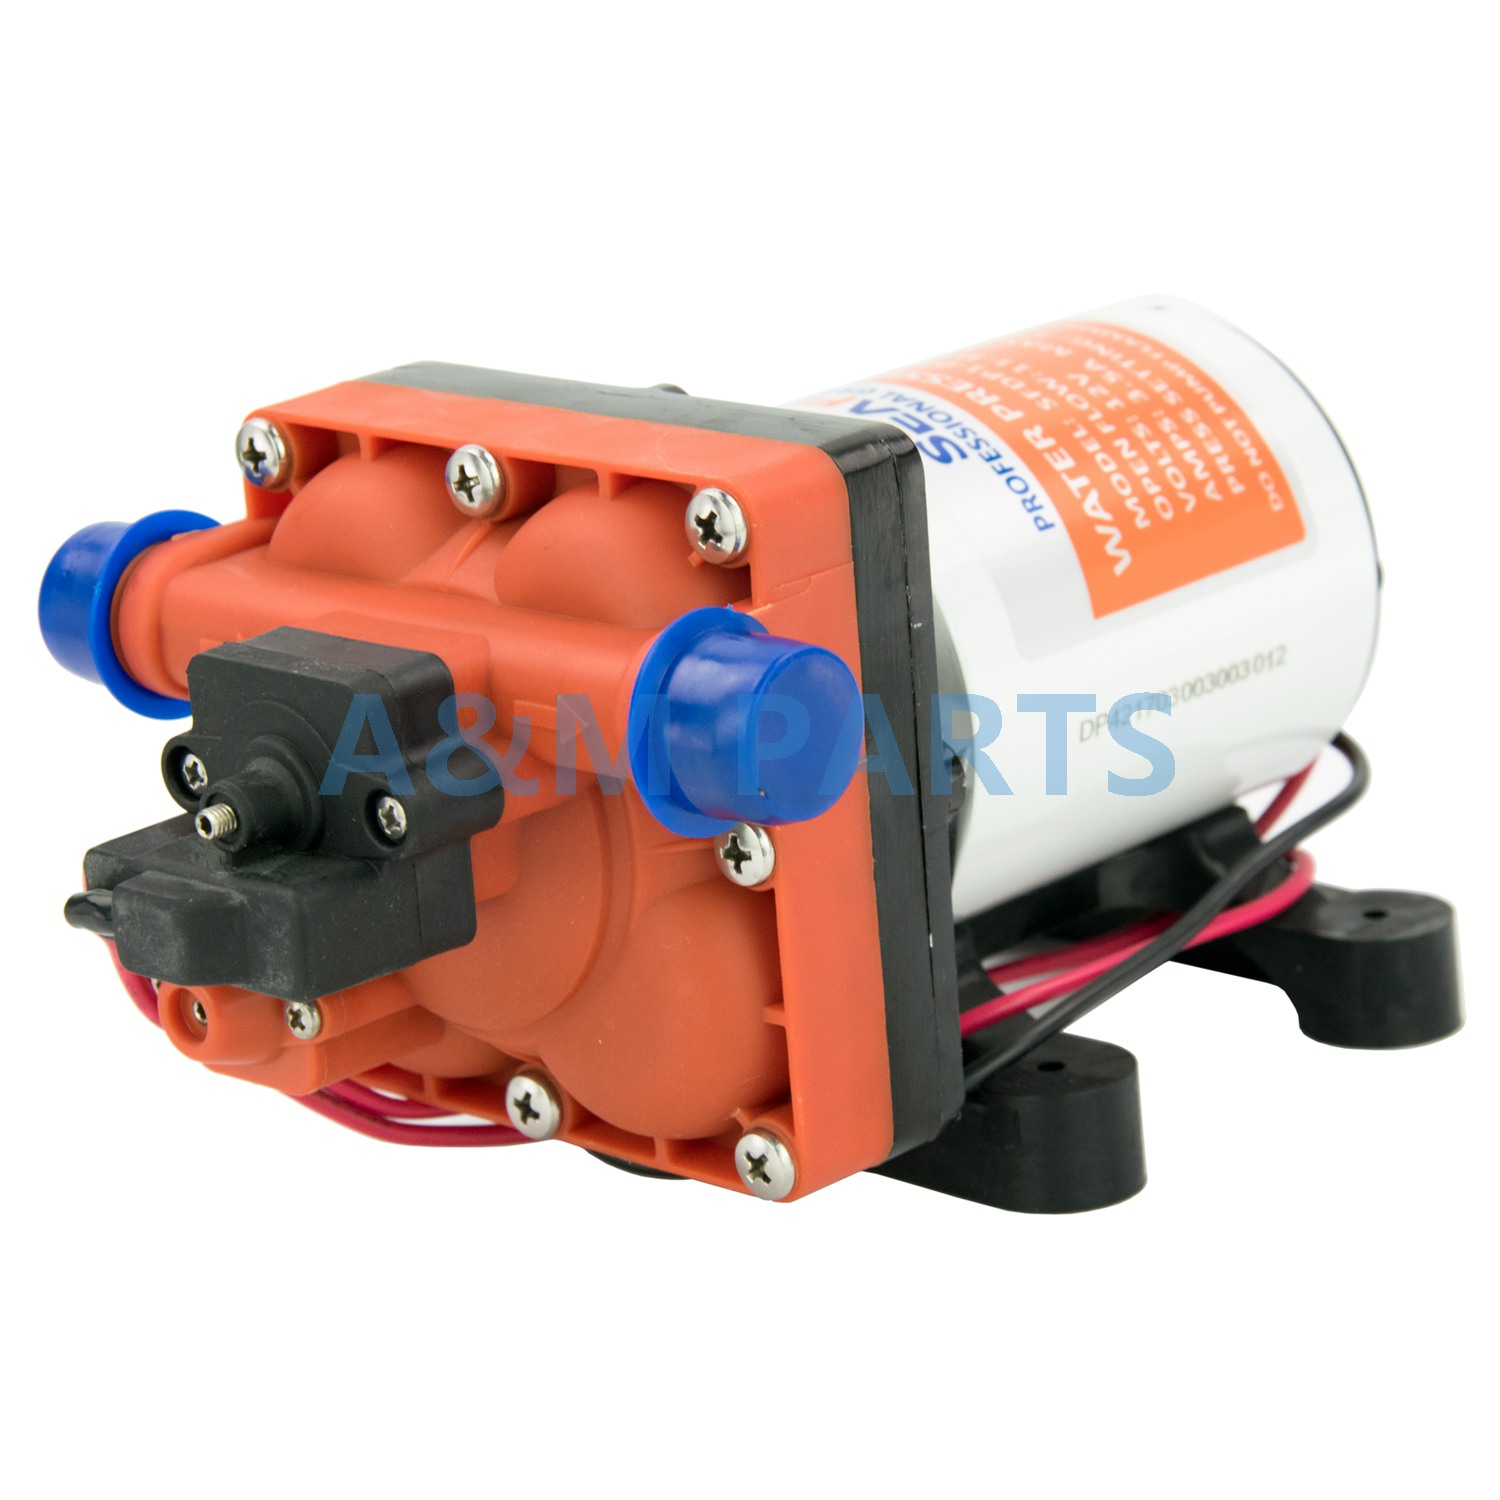 12V 55 PSI 3.0 GPM Self Priming Diaphragm Pump Boat Marine RV Water Pump